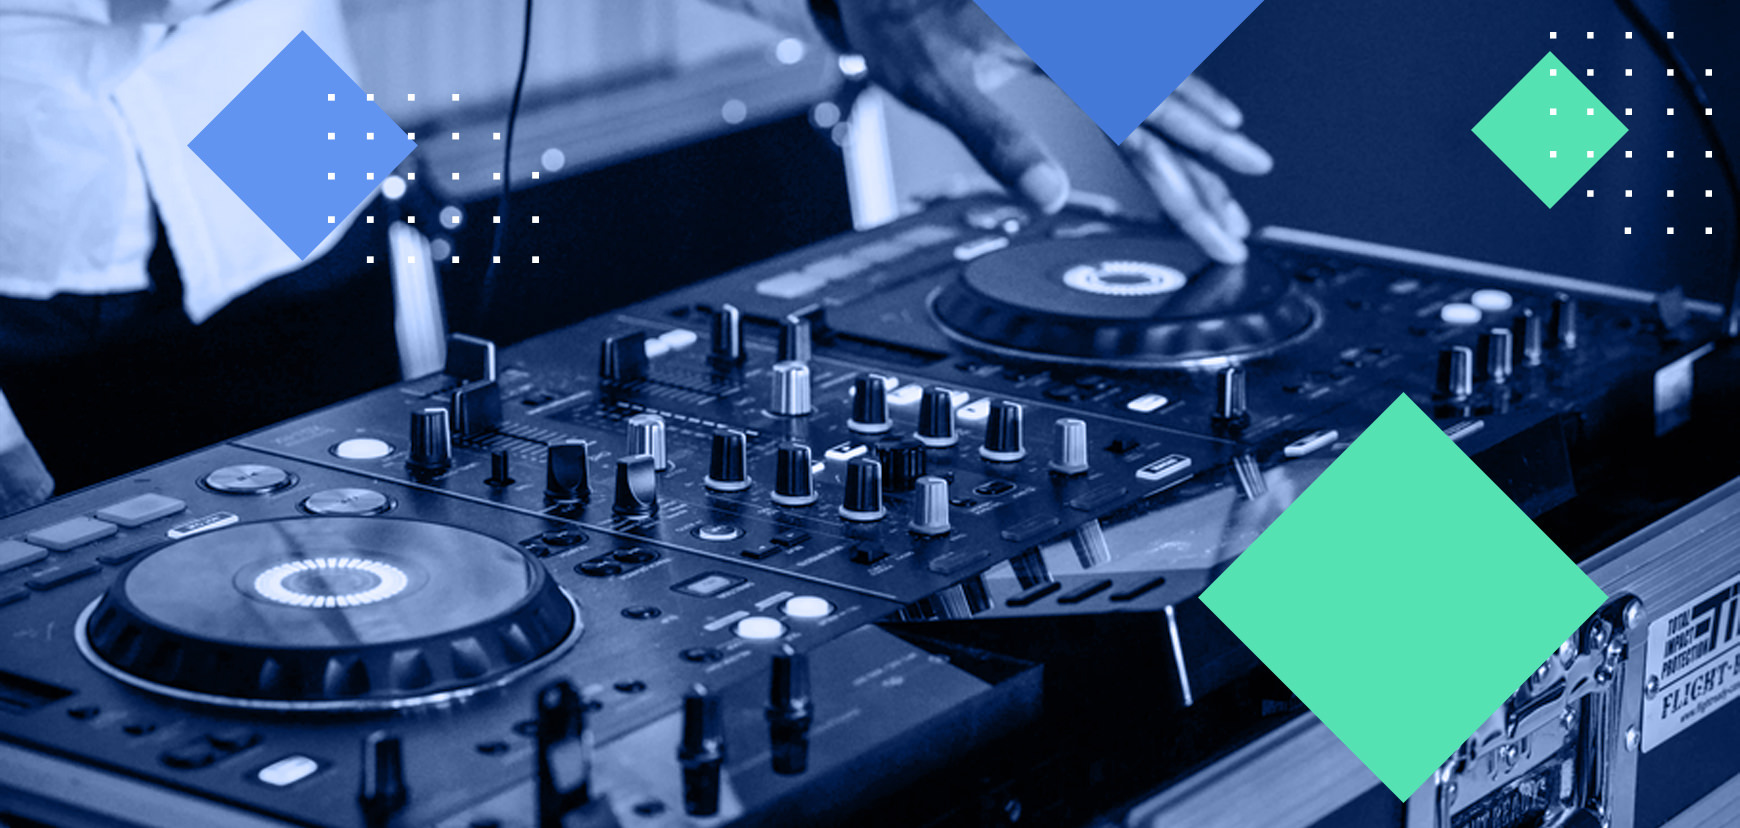 17 Energetic Royalty Free Electronic Music to Bring the Beat